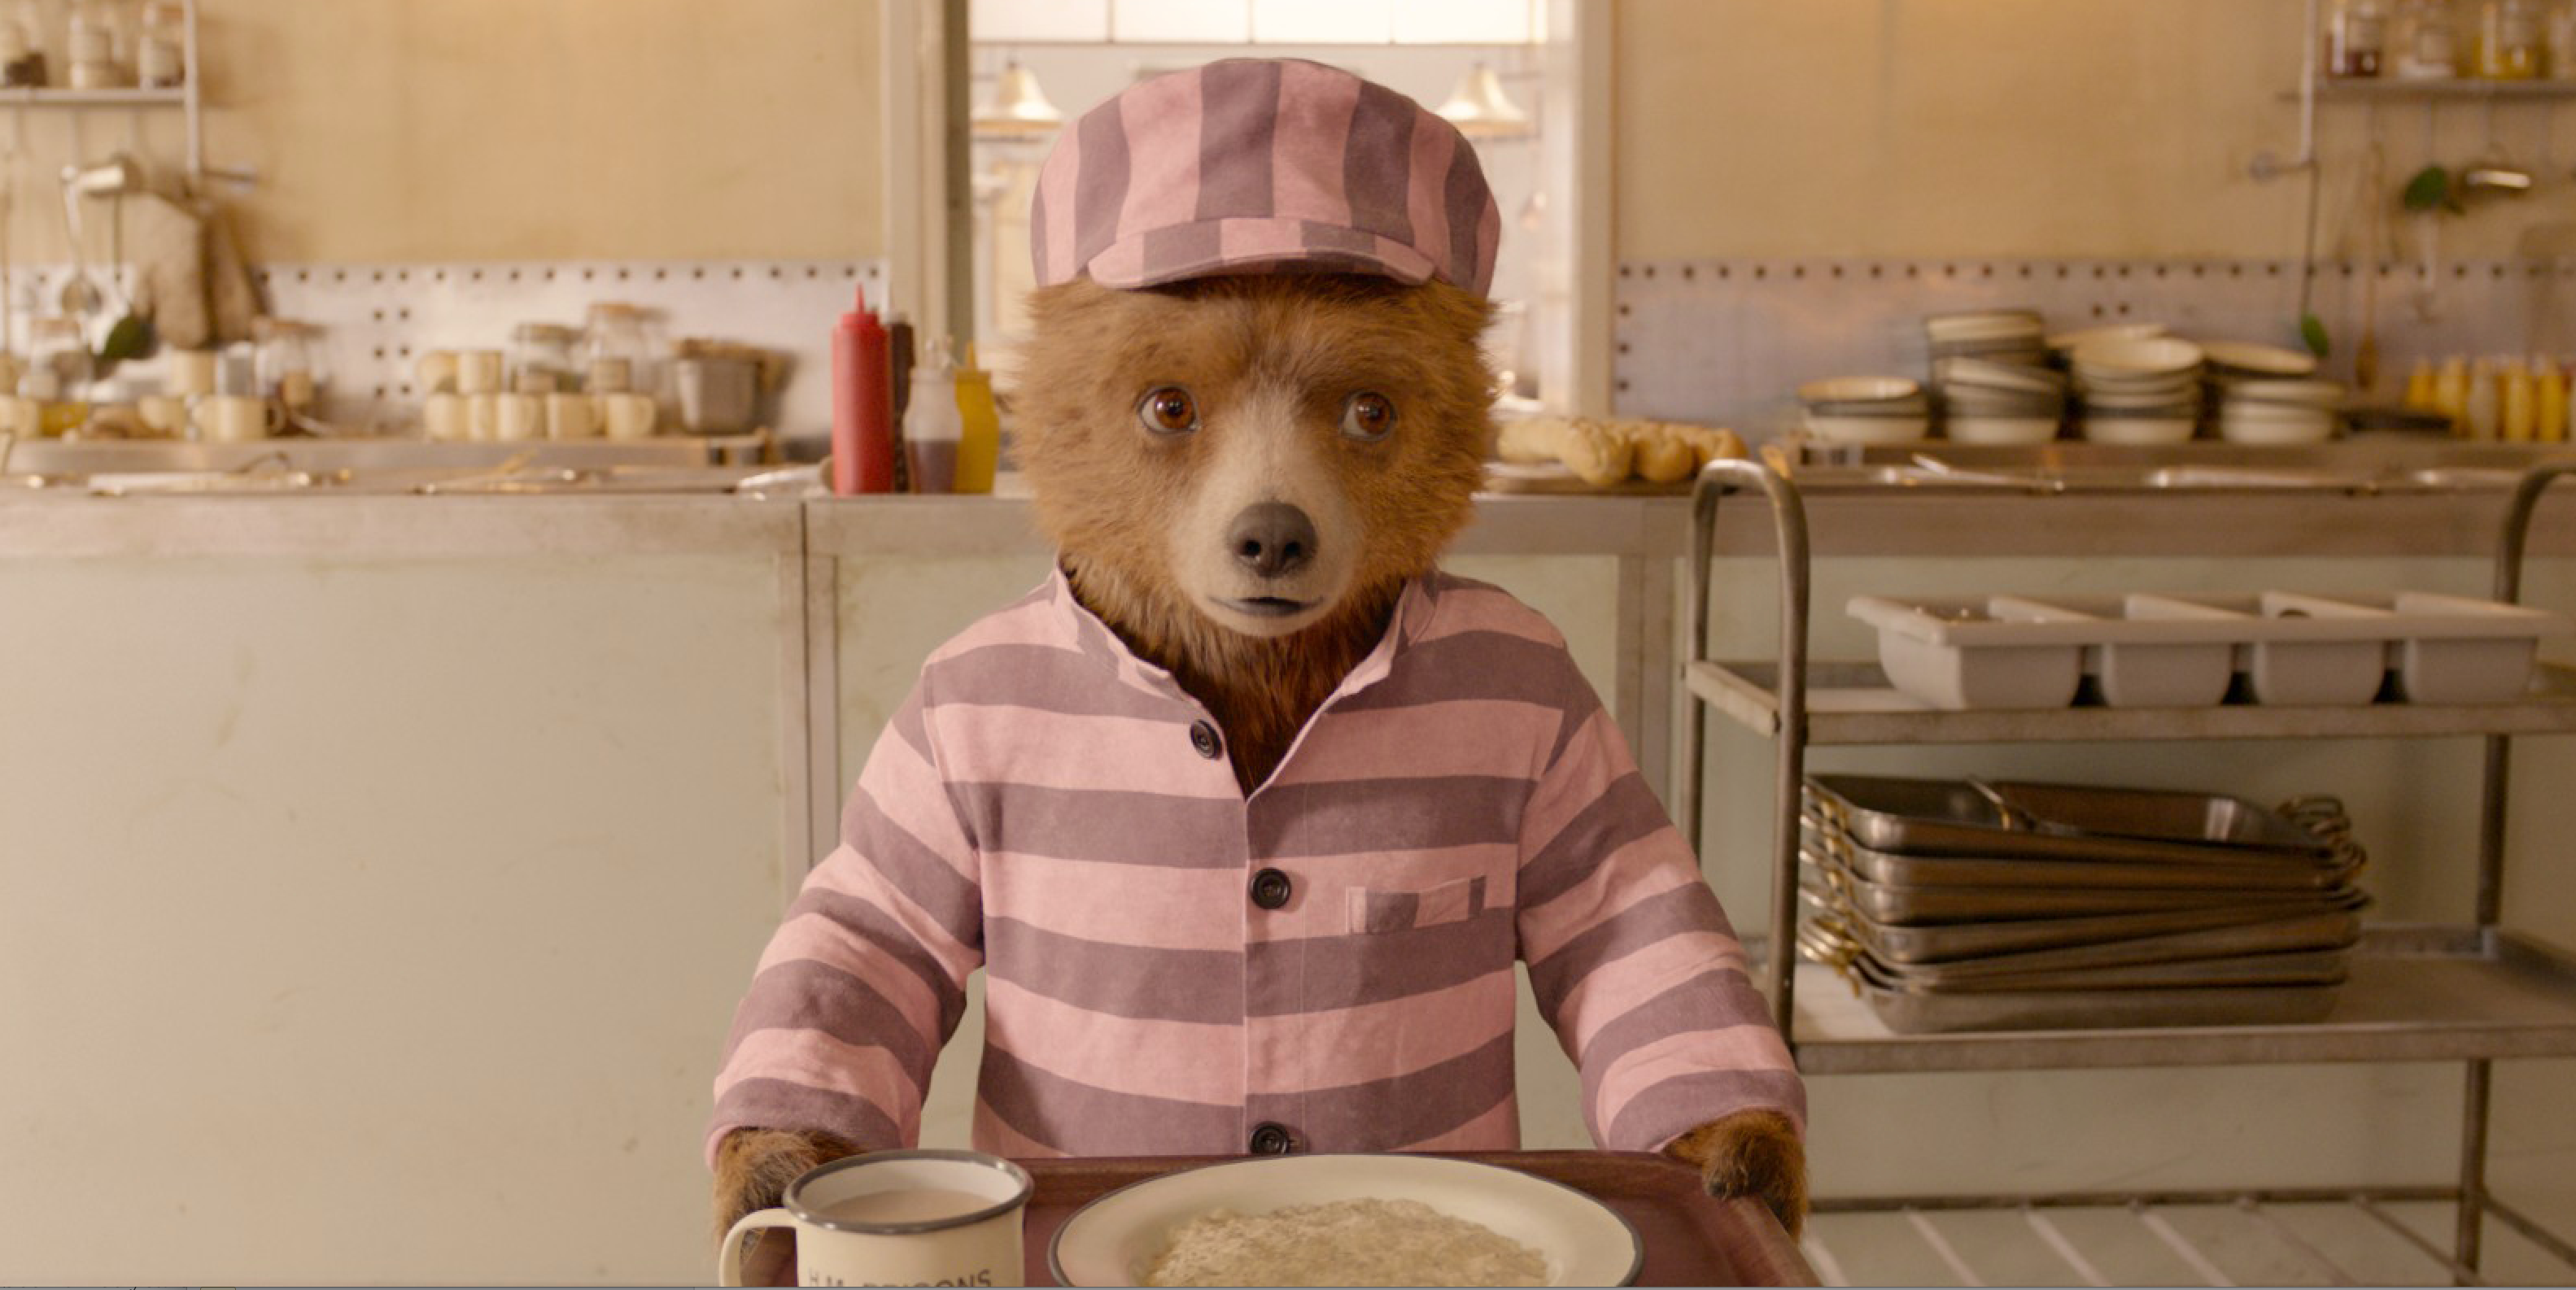 'Paddington 2' is a delightful sequel that improves on style and substance